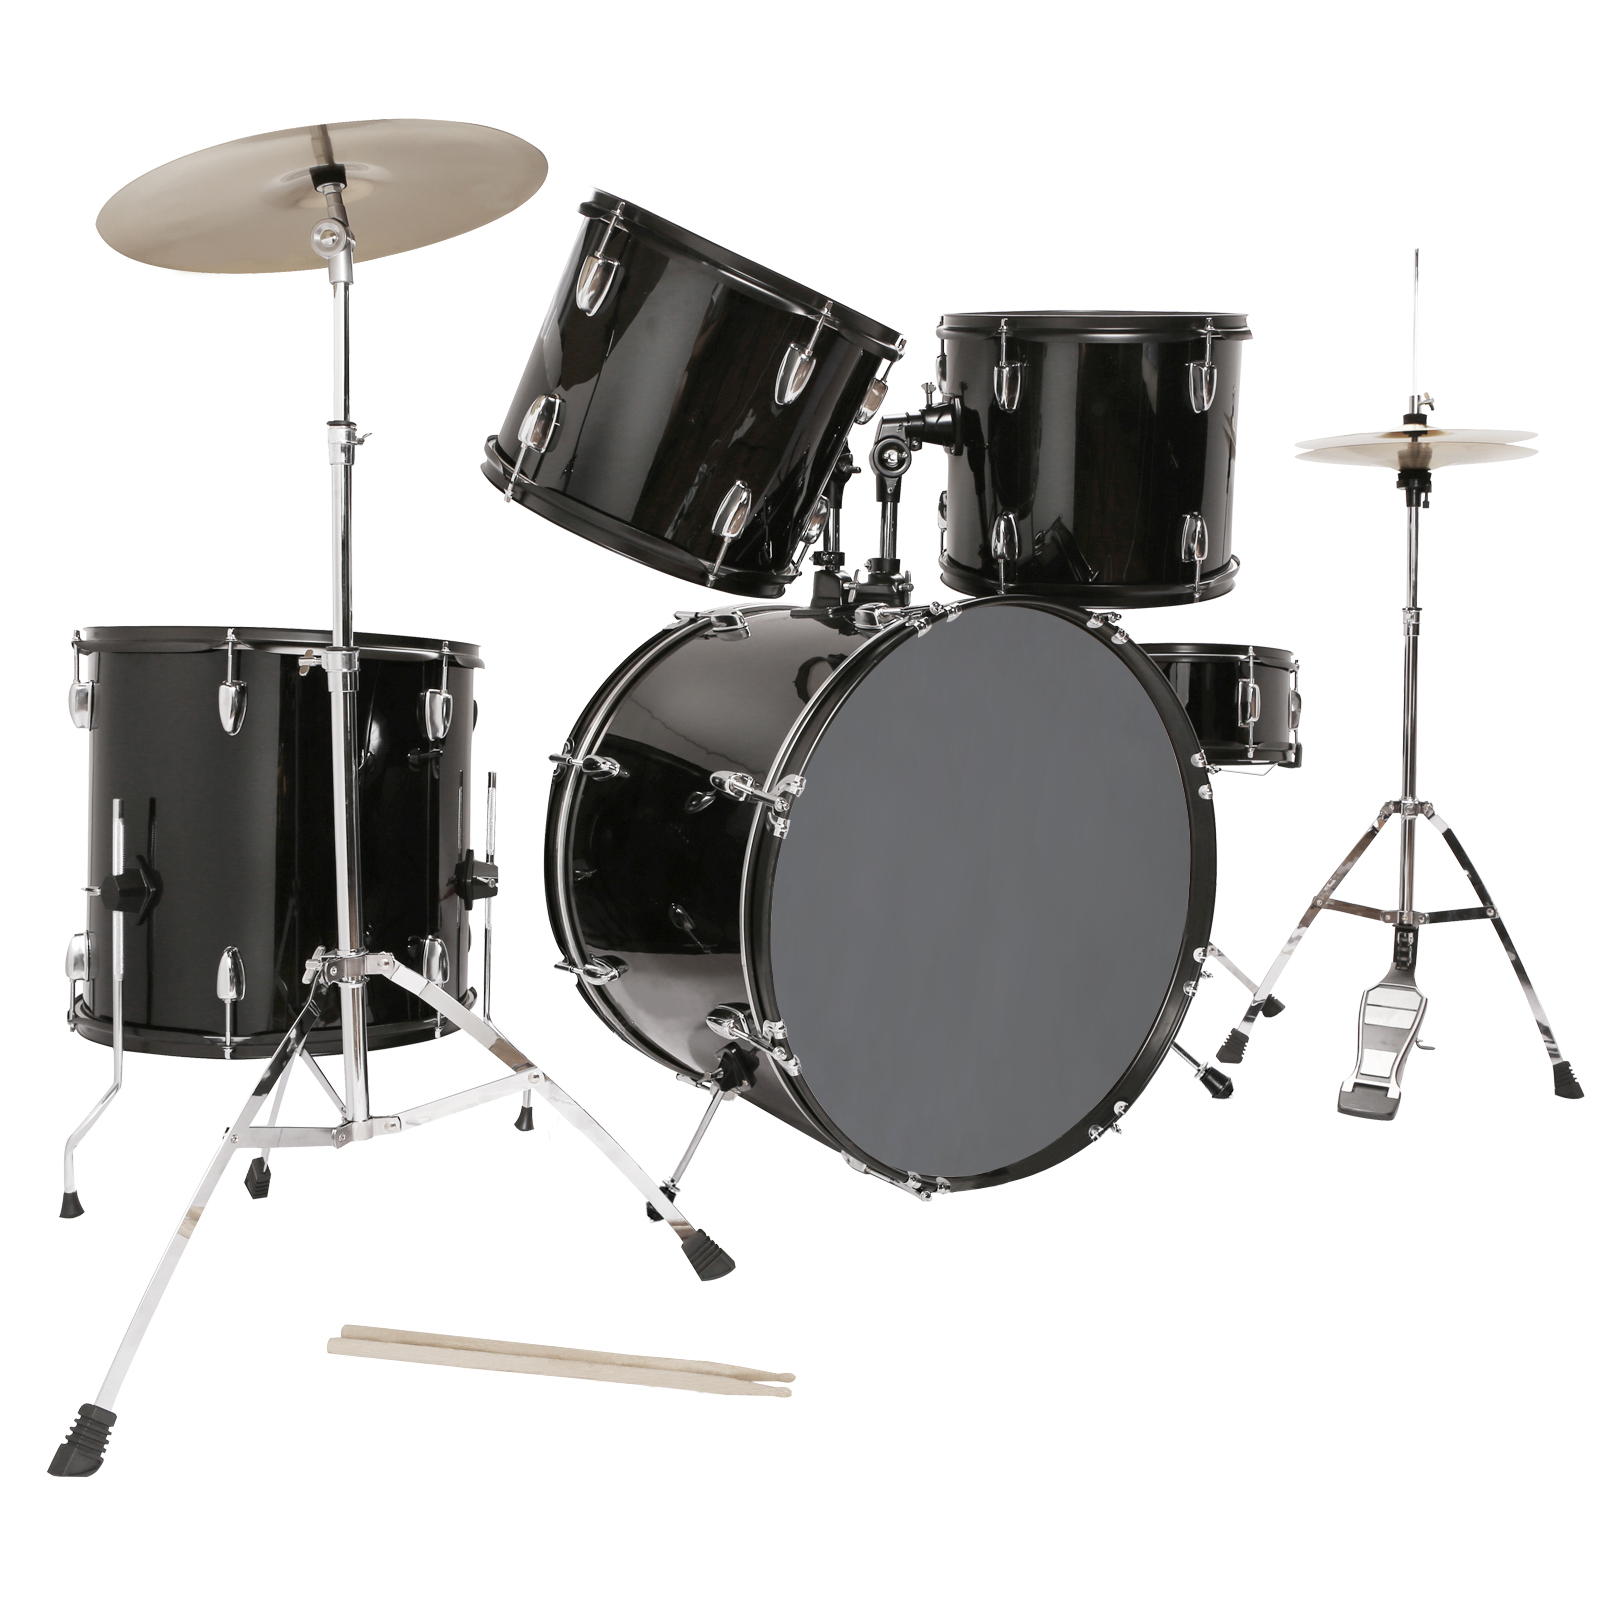 5 Piece Complete Adult Drum Set Cymbals Full Size Kit w/ Stool & Sticks Black